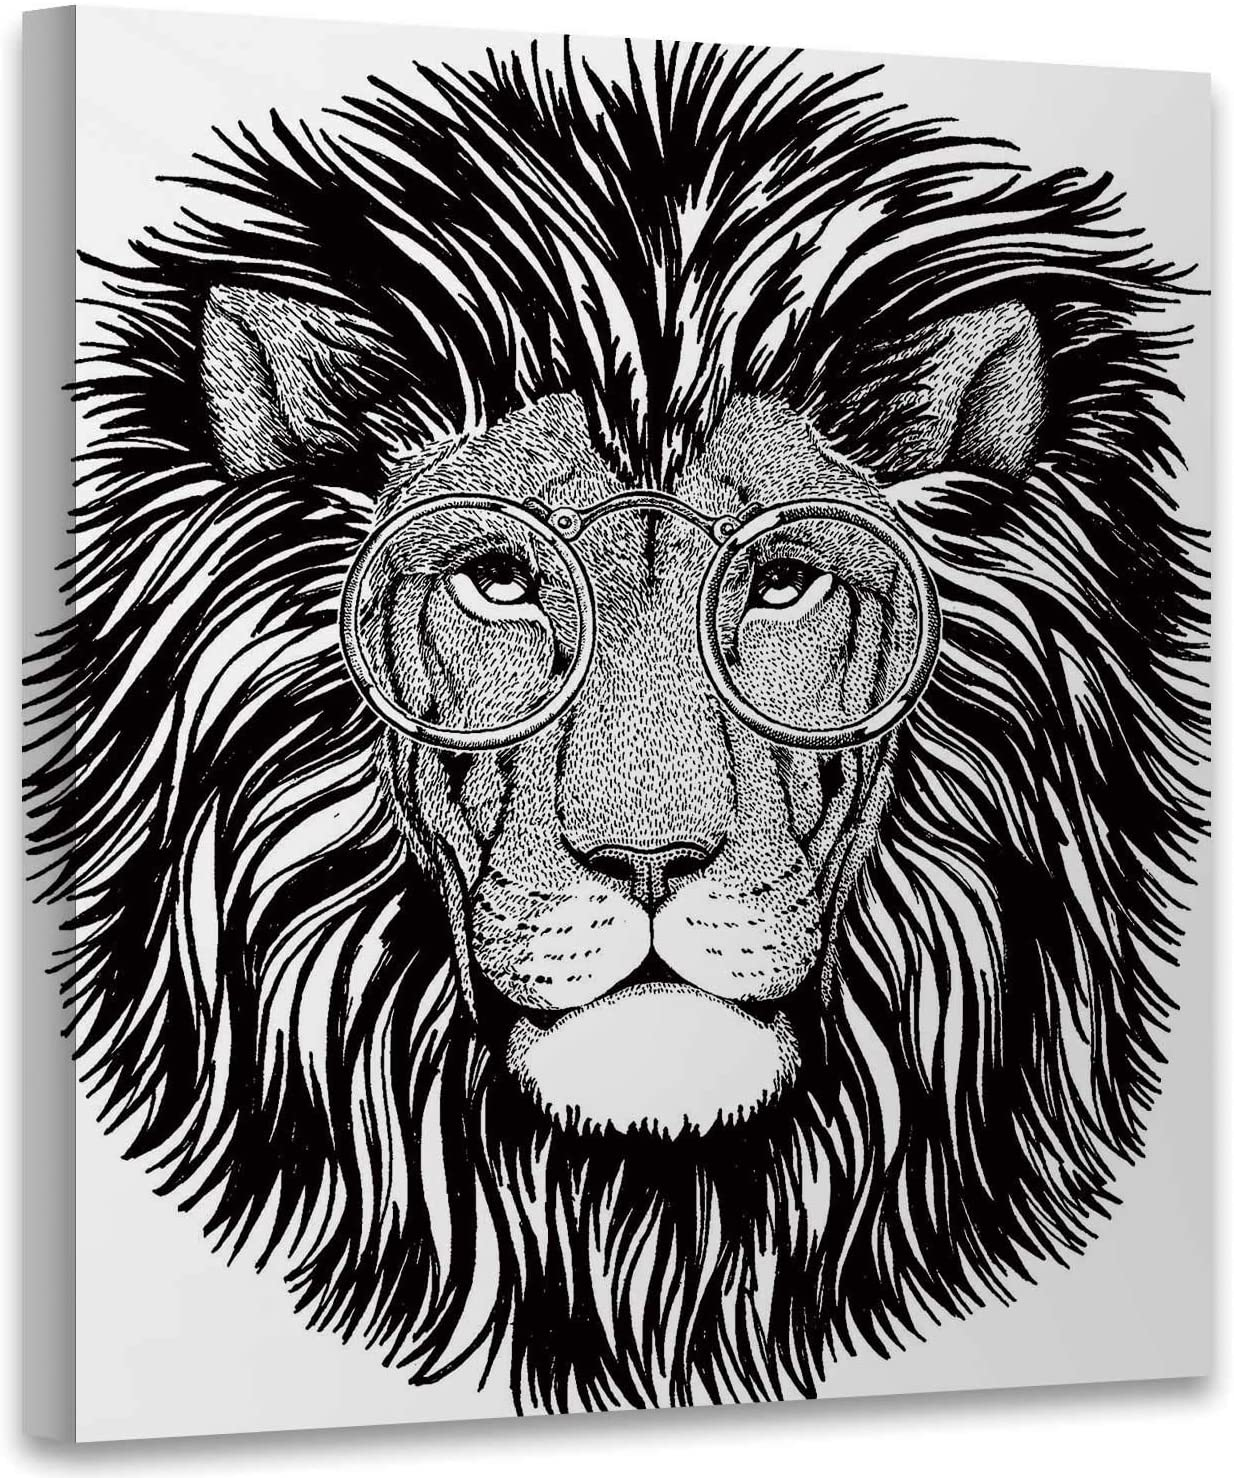 Hitecera Wild Hipster Lion for Tattoo,Picture Painting Artwork for Bathroom Logo for Bathroom 8x8 Inches